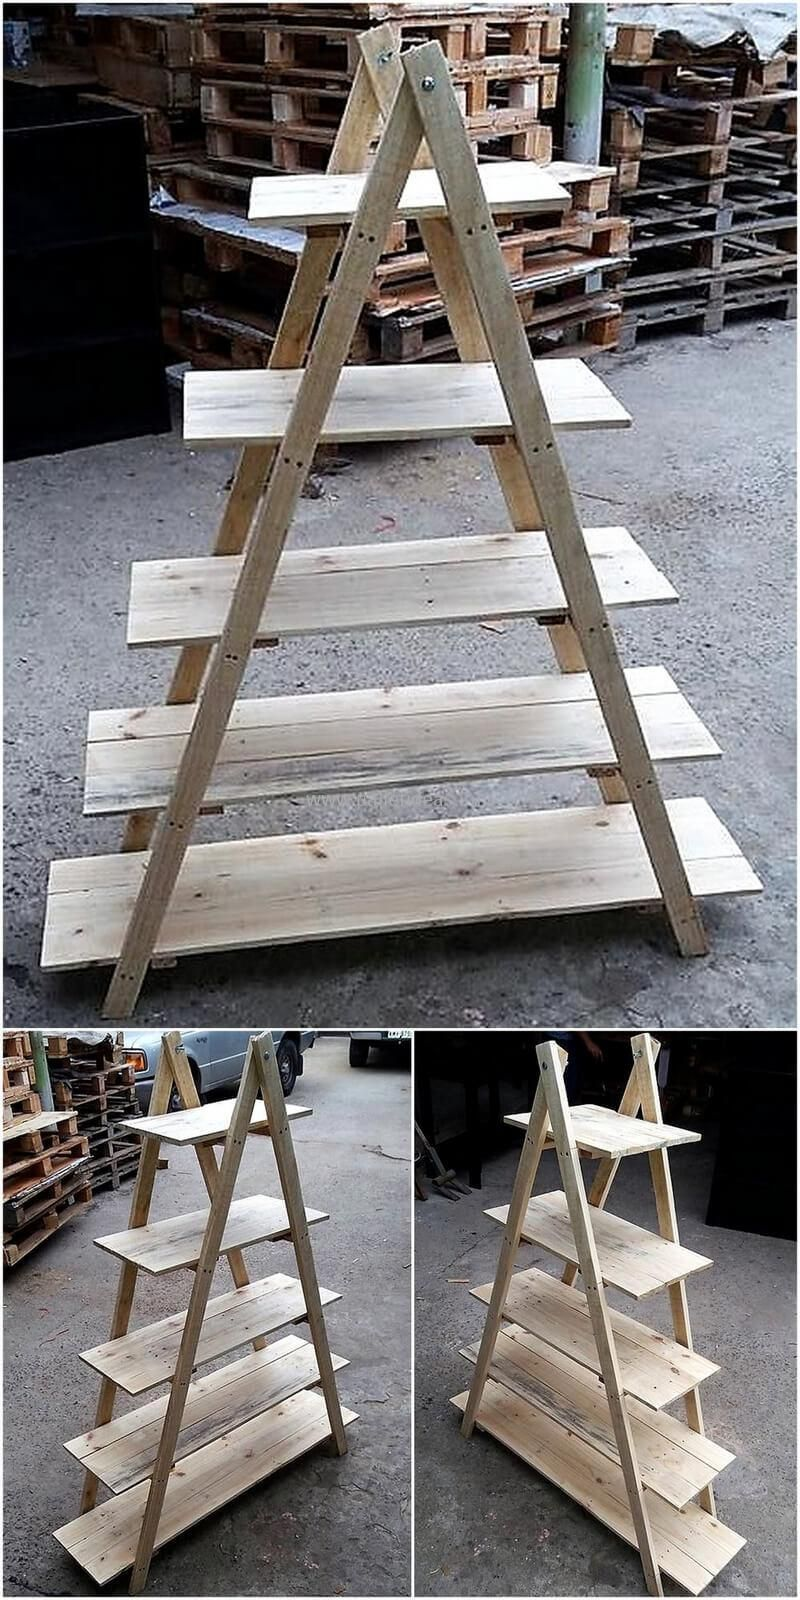 Woodworking Projects | Diy pallet projects, Recycled ...